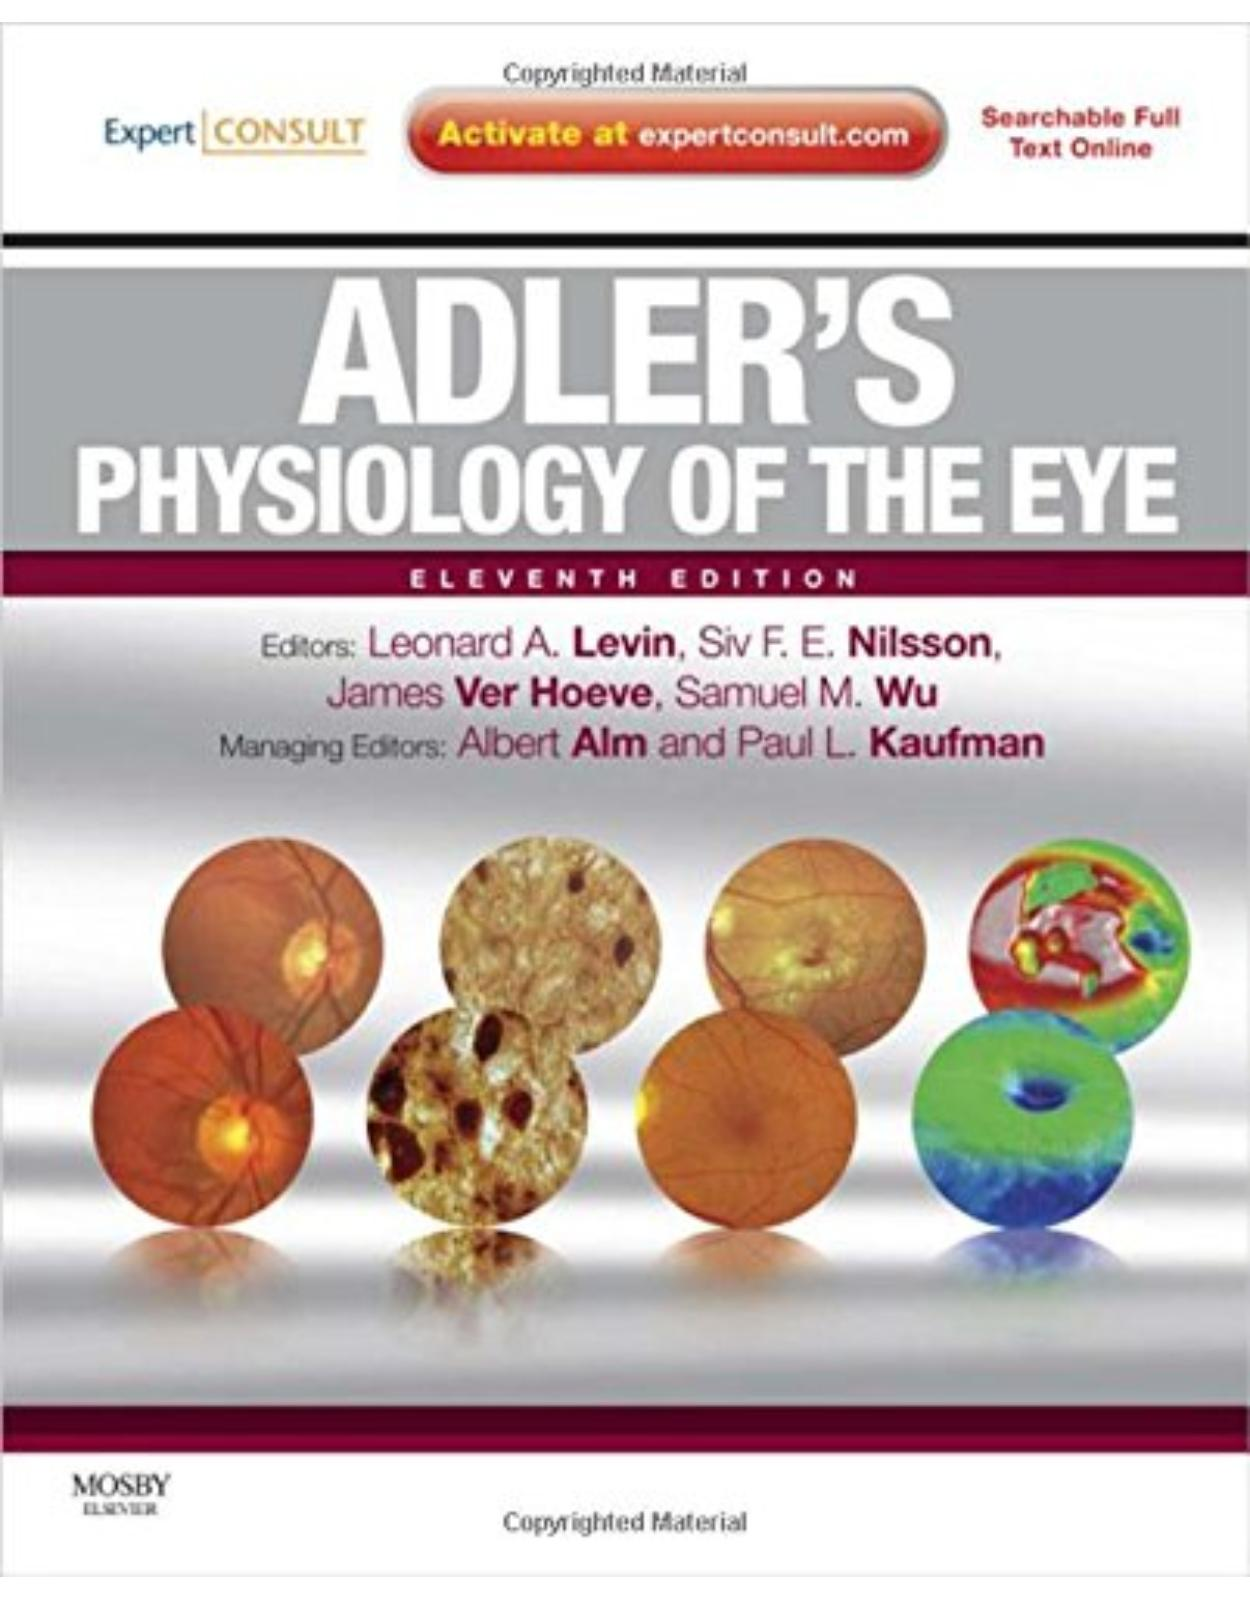 Adler's Physiology of the Eye: Expert Consult - Online and Print 11e